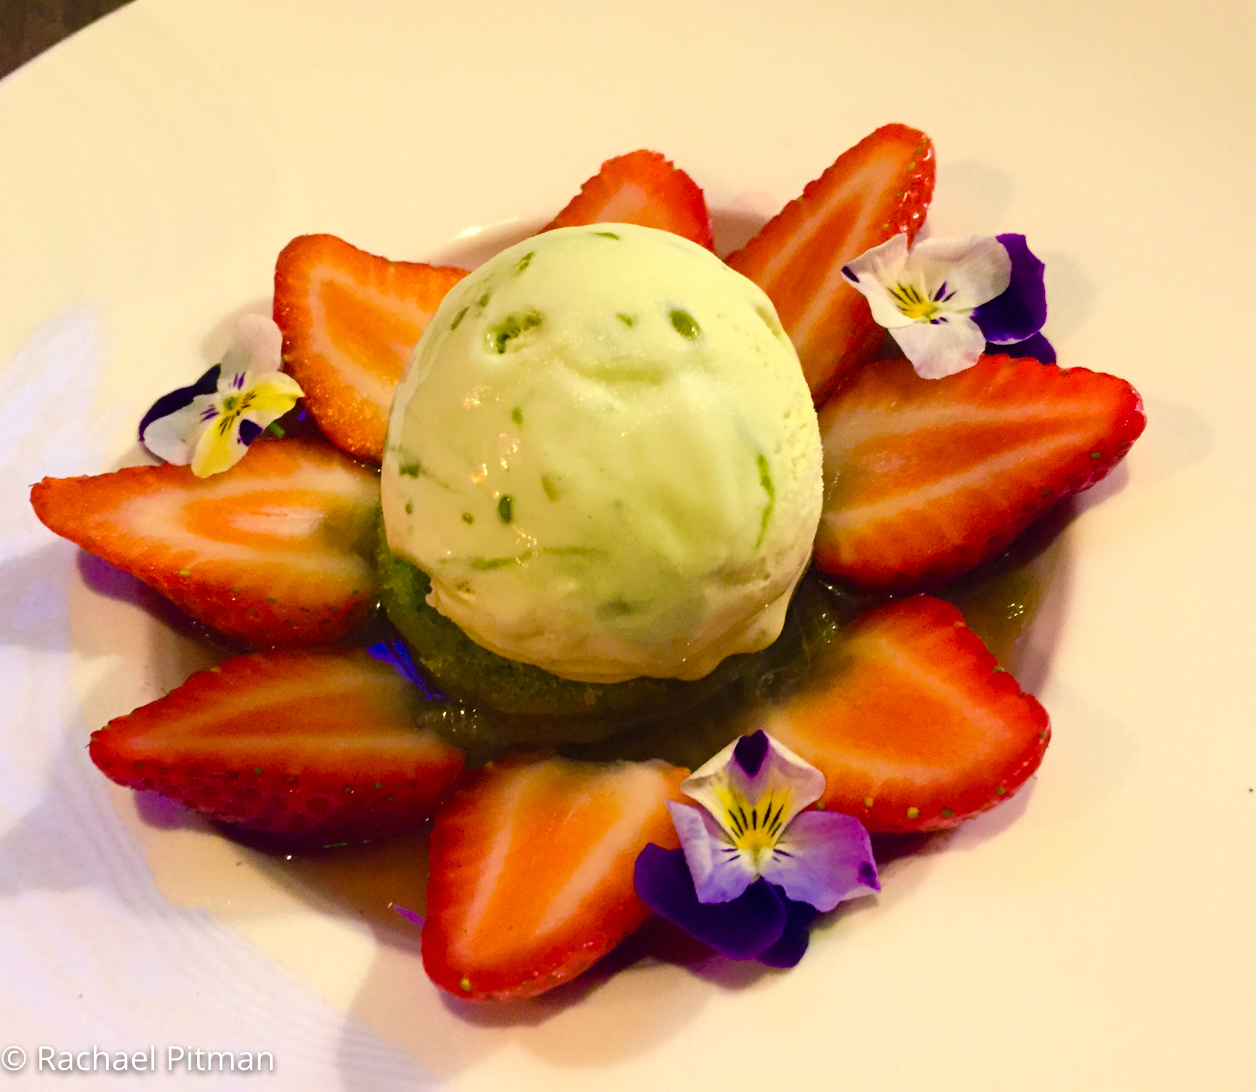 Review of No 34 restaurant in the Orchid Hotel in Bournemouth